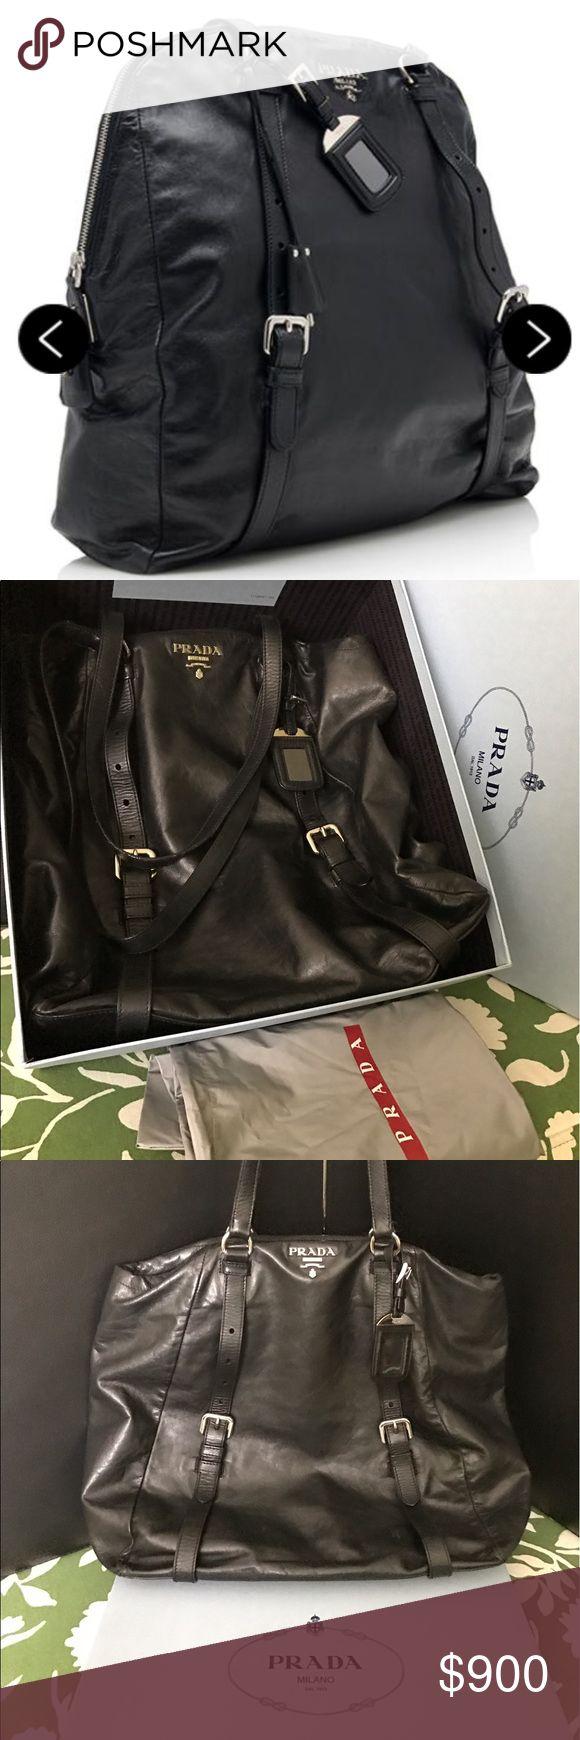 """Prada New Look Nero Tote Bag Pre-Loved Condition Moderate wear, creasing, and scuffs throughout exterior and handles. Light wear to bottom corners. Surface scratches on hardware.  Size Width (at base): 14"""" Height: 16"""" Depth: 3.5"""" Shoulder Strap Drop: 10""""  Product Details Type of Material: Calfskin Color: Black Lining: Black logo jacquard Pockets: Interior Zip, Interior open Hardware: Silver-tone Closure: Zipper Origin: Italy Includes: Luggage tag, Dust Bag and Large Box Prada Bags Totes"""